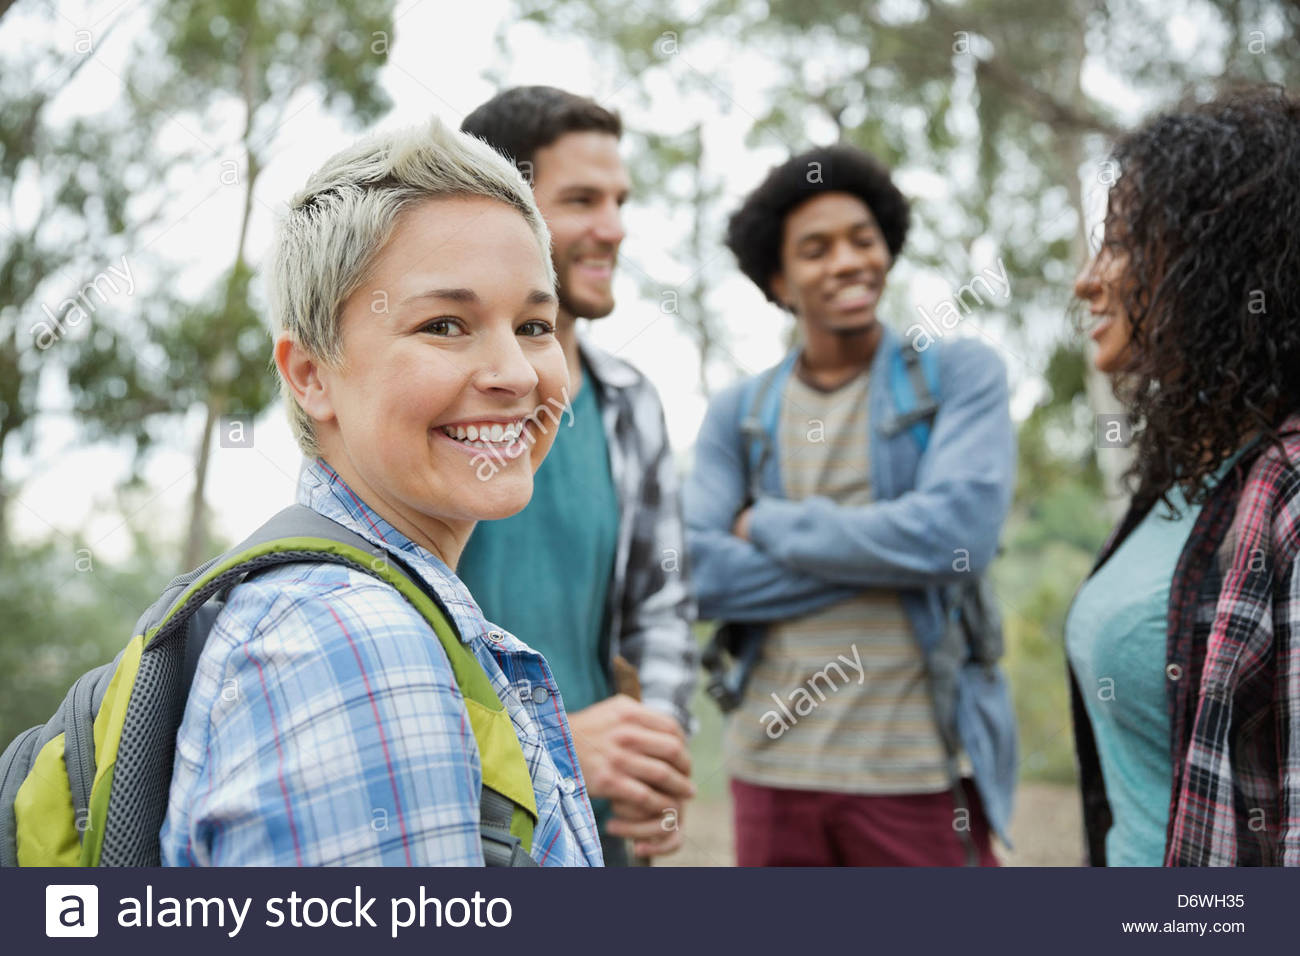 Portrait of happy mid adult woman with friends  in outdoors - Stock Image